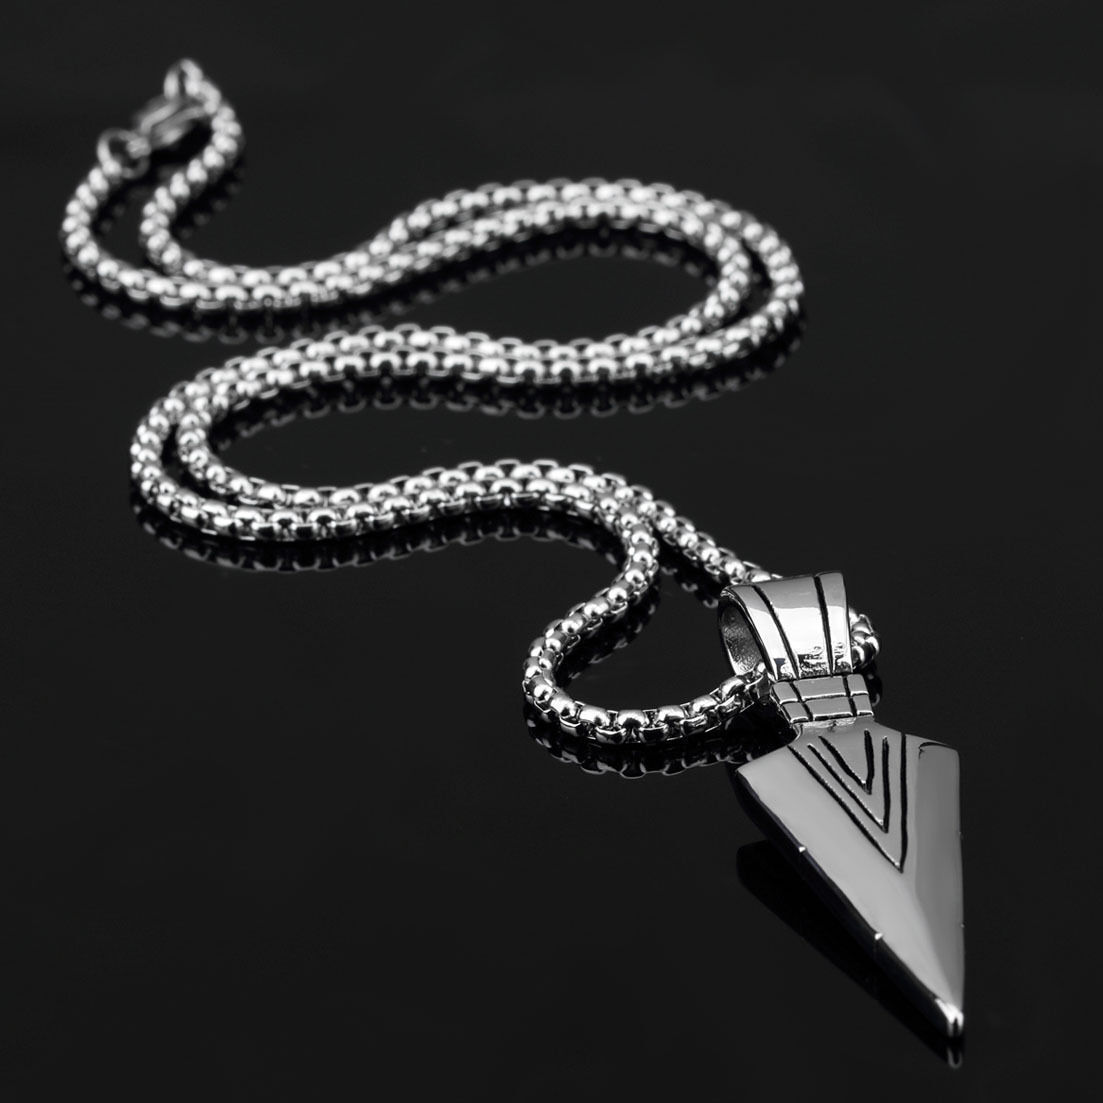 Fashion jewelry men gold silver arrow head pendant long chain fashion jewelry men gold silver arrow head pendant long chain necklace gift aloadofball Images